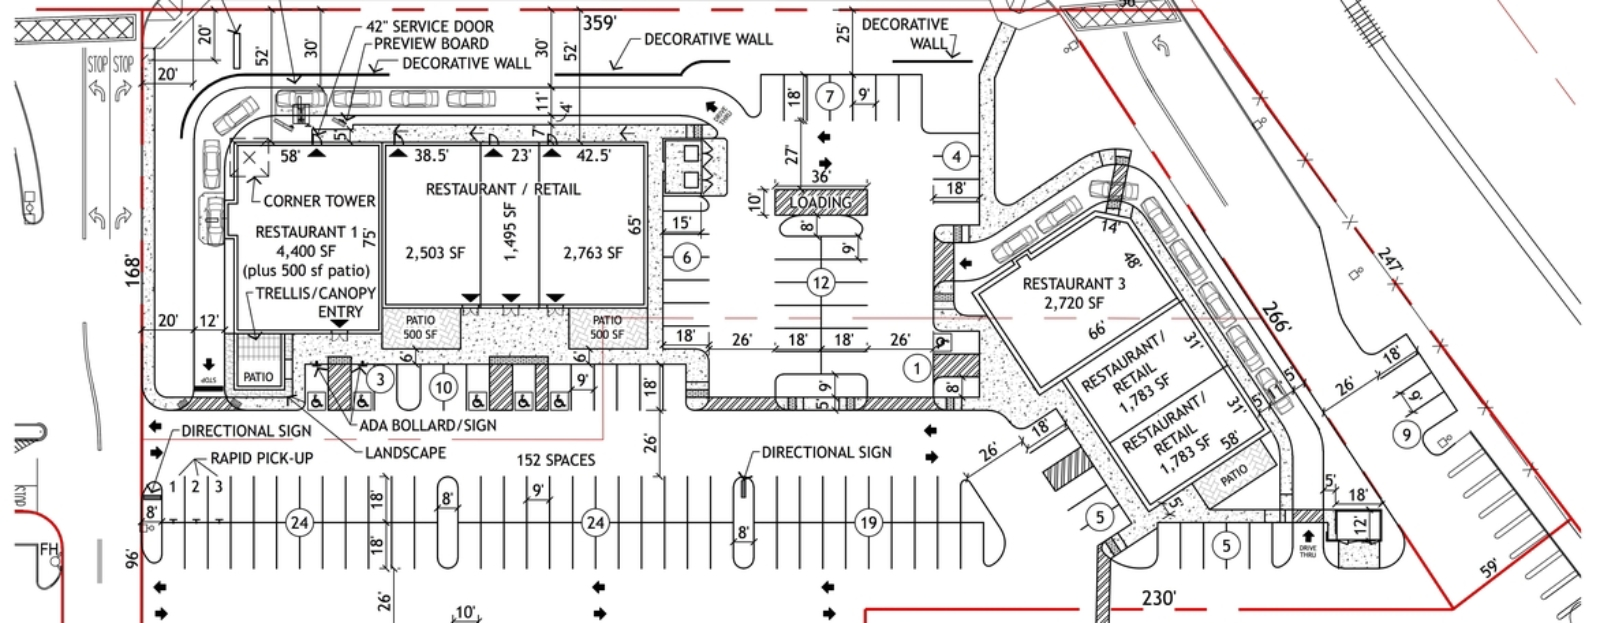 Commercial Site Plan Quality Plans With Quick Turnaround